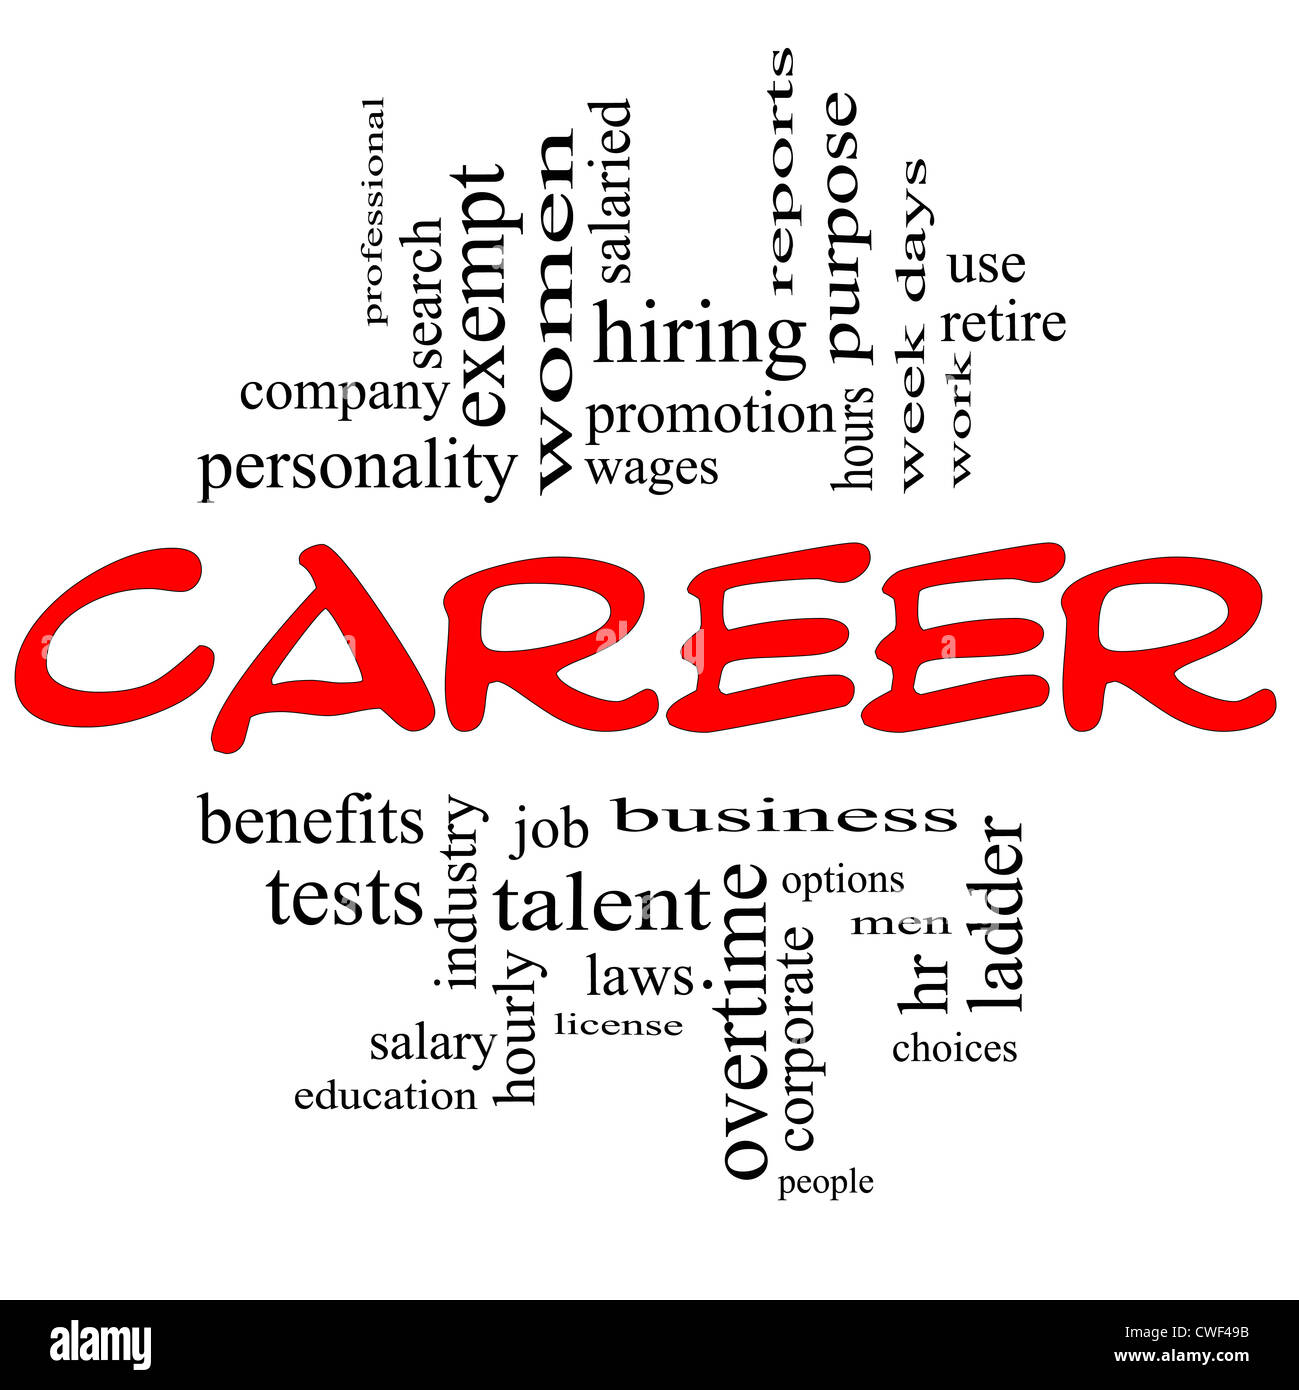 career word cloud concept in red terms such as wages career word cloud concept in red terms such as wages promotion work